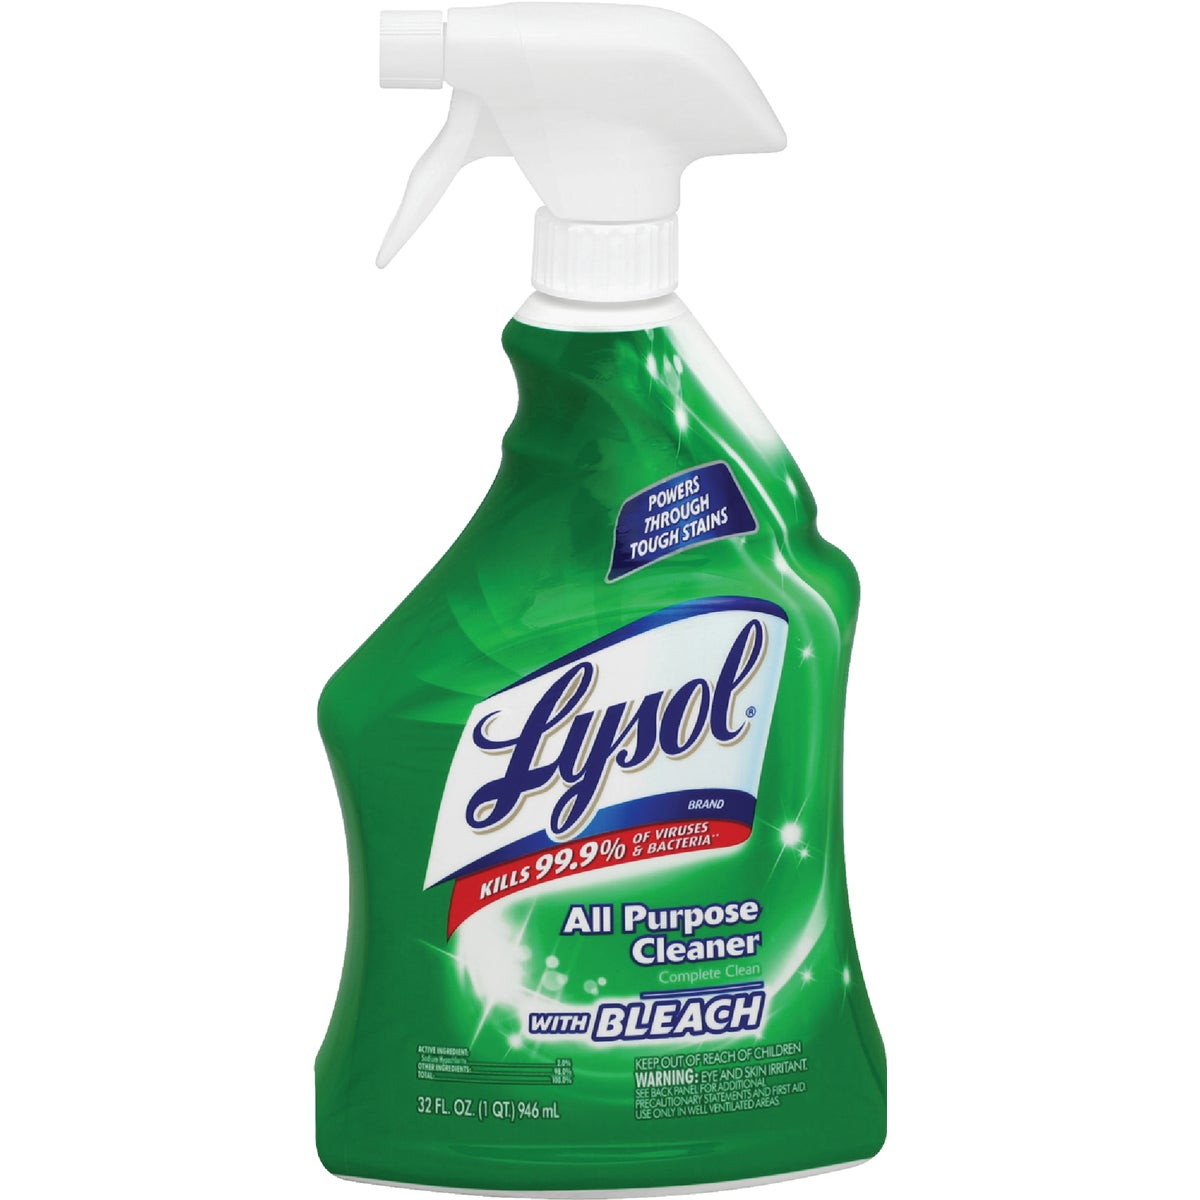 32OZ LYSOL PLUS BLEACH - 1920078914 by Reckitt Benckiser